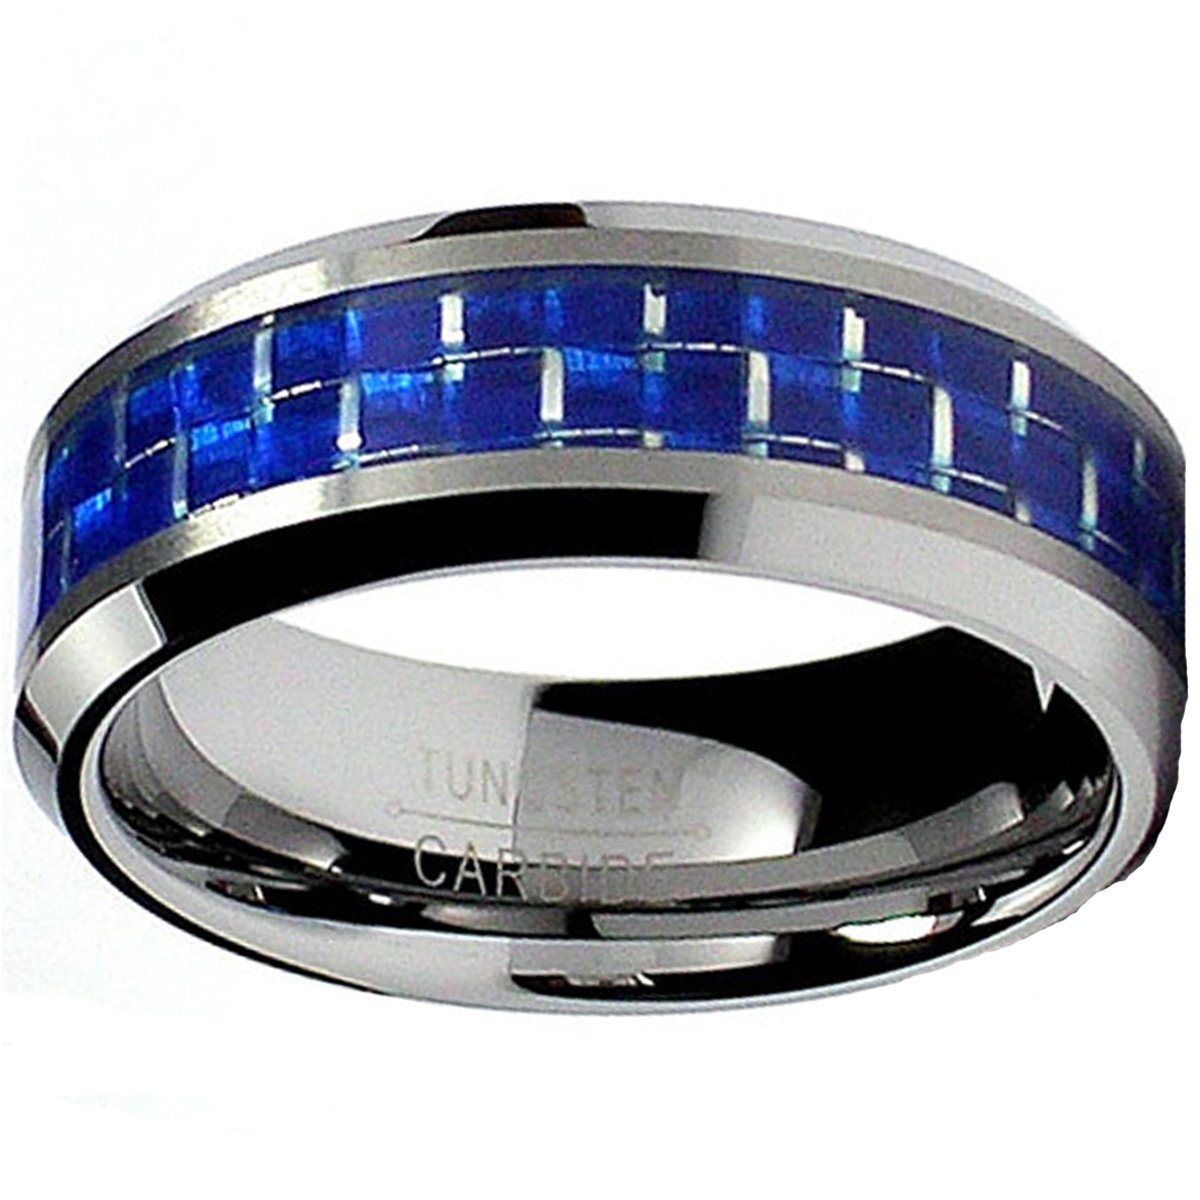 8MM Flat Top Tungsten Carbide Ring Wedding Band W/Blue Carbon Fiber Inlay Sizes 7 to 13 WCR11089